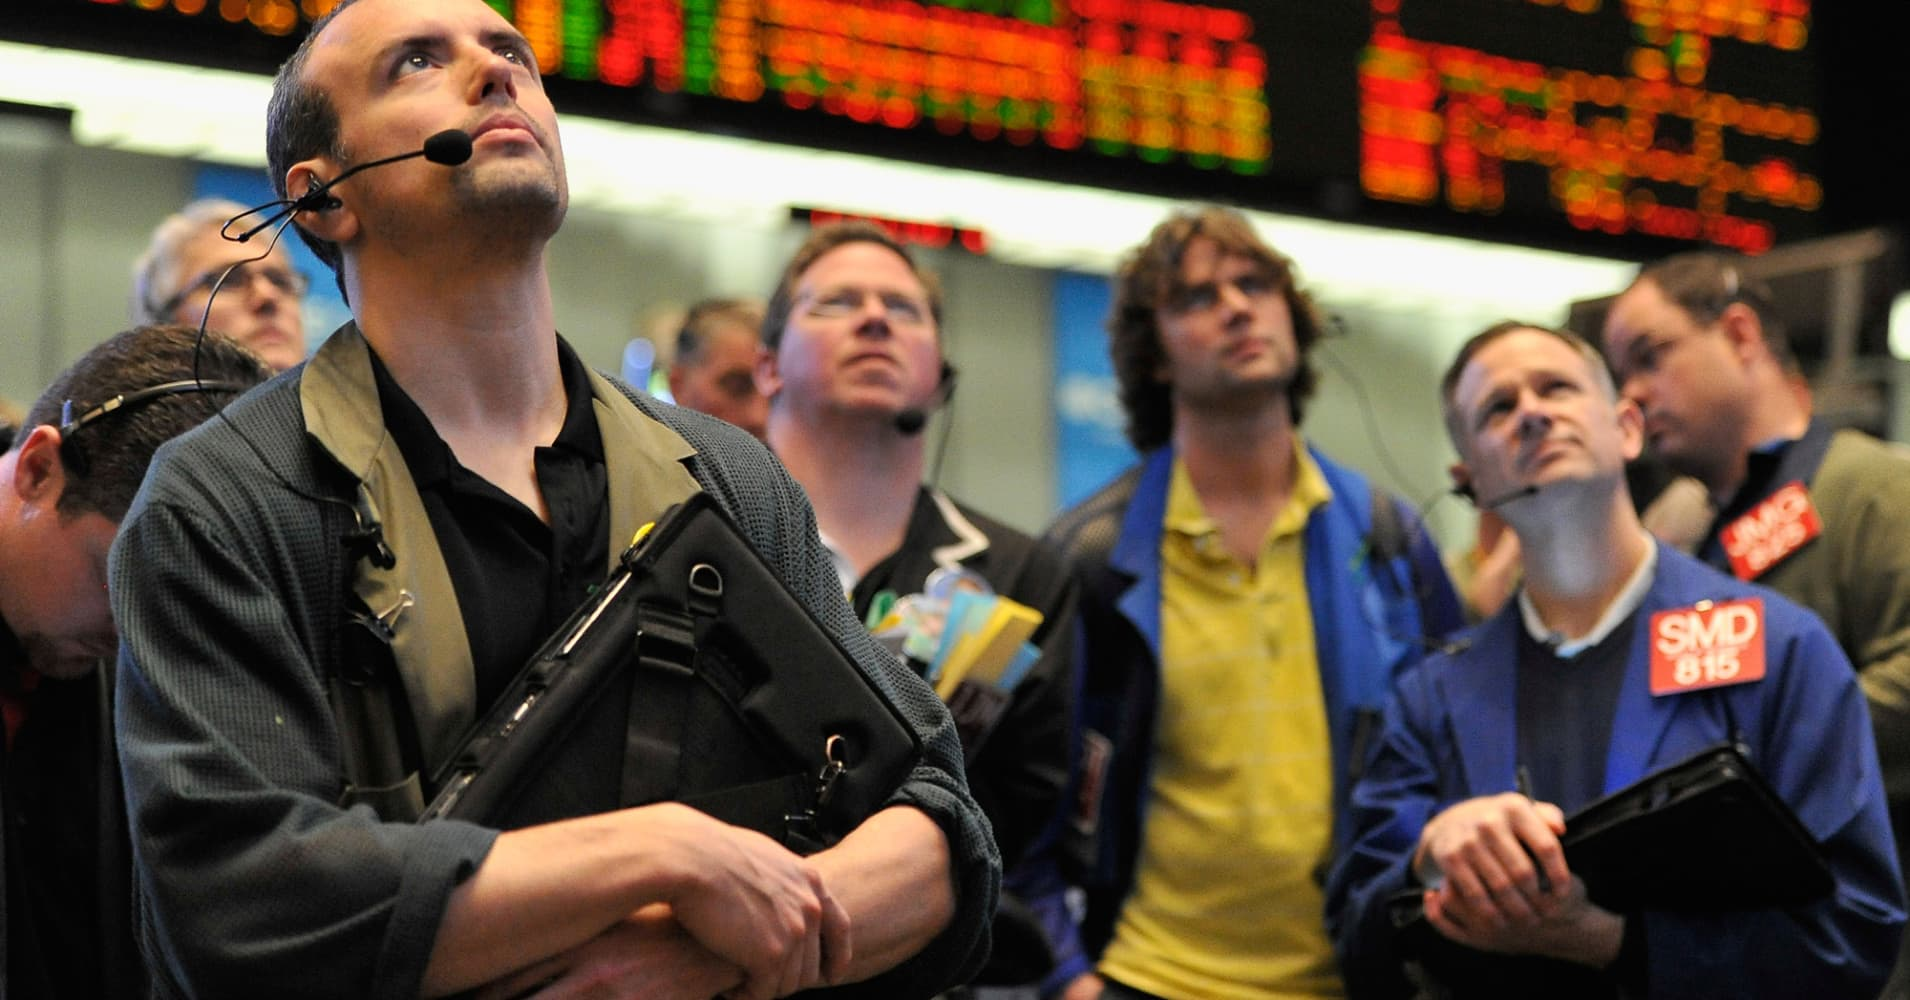 Interest rates shoot higher amid worries the central bank easy money party is over